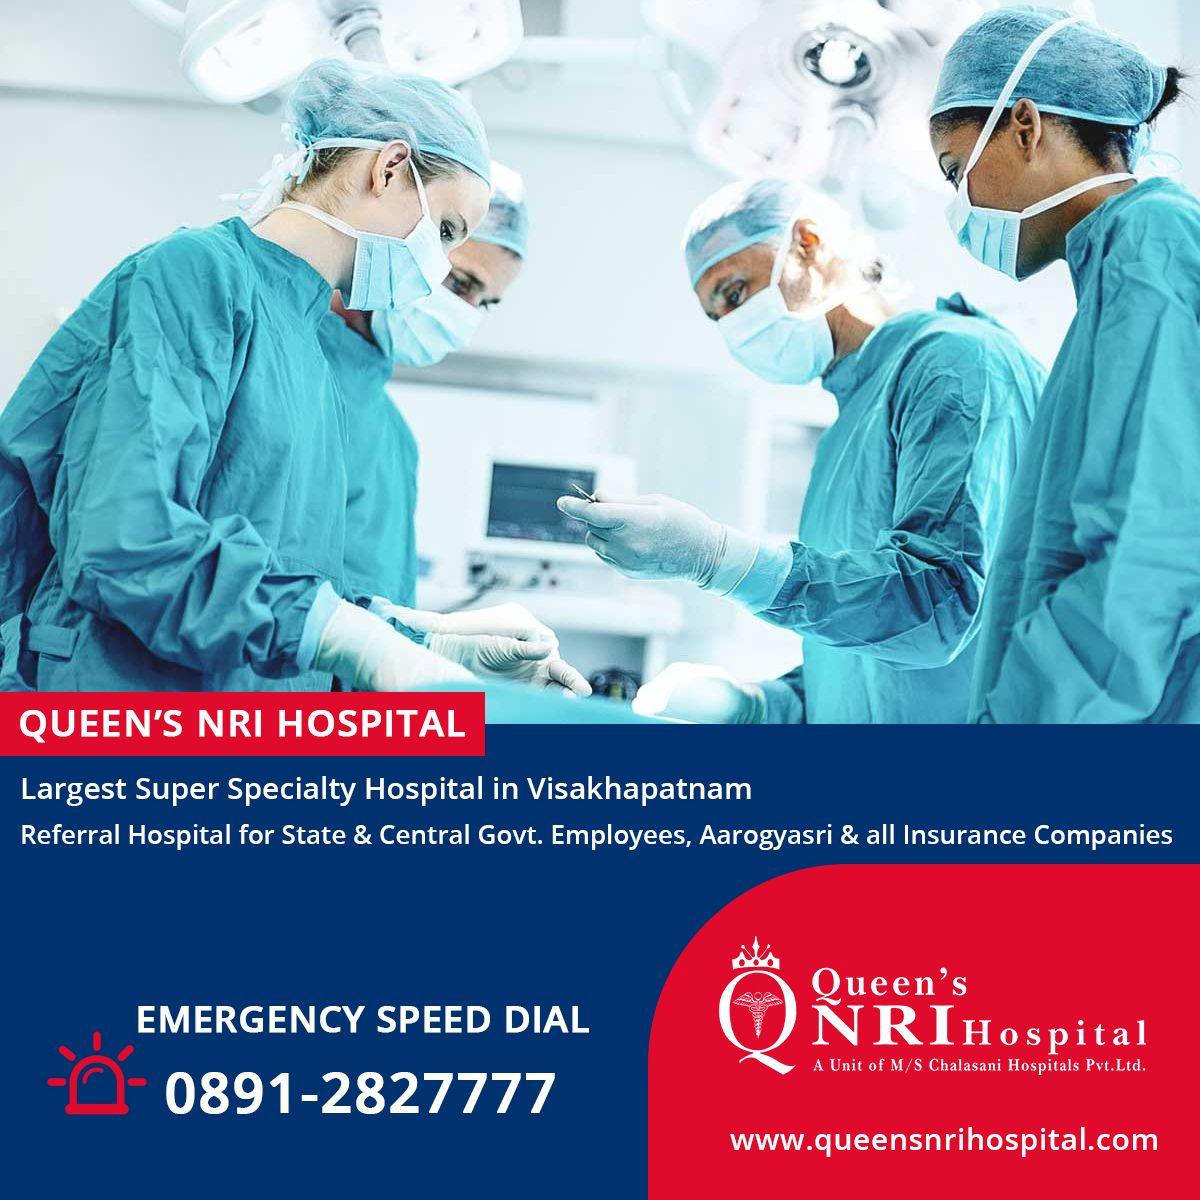 Queen's NRI Hospital. Referral Hospital for State